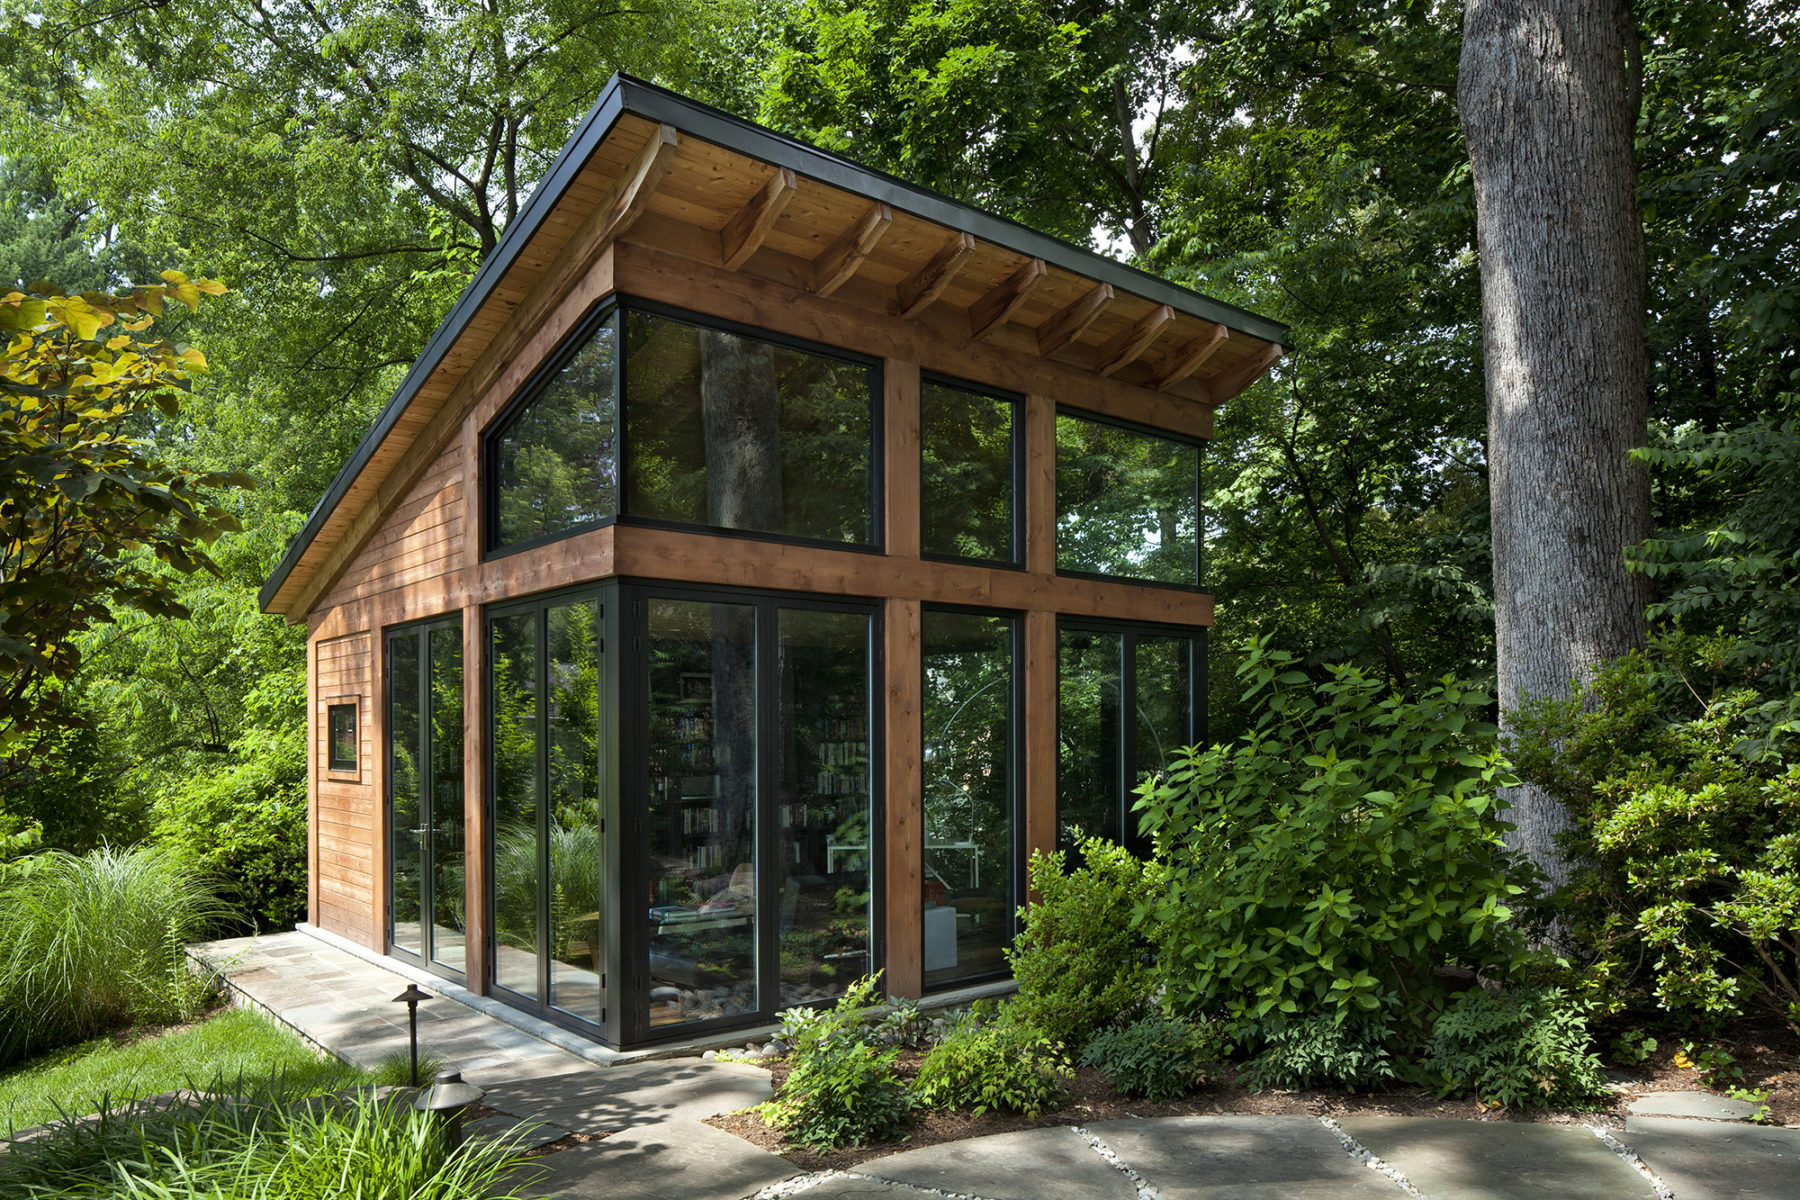 Cornered windows, glass doors and transoms expose Harrison Design glass cabin to the woods and enhance sense of place